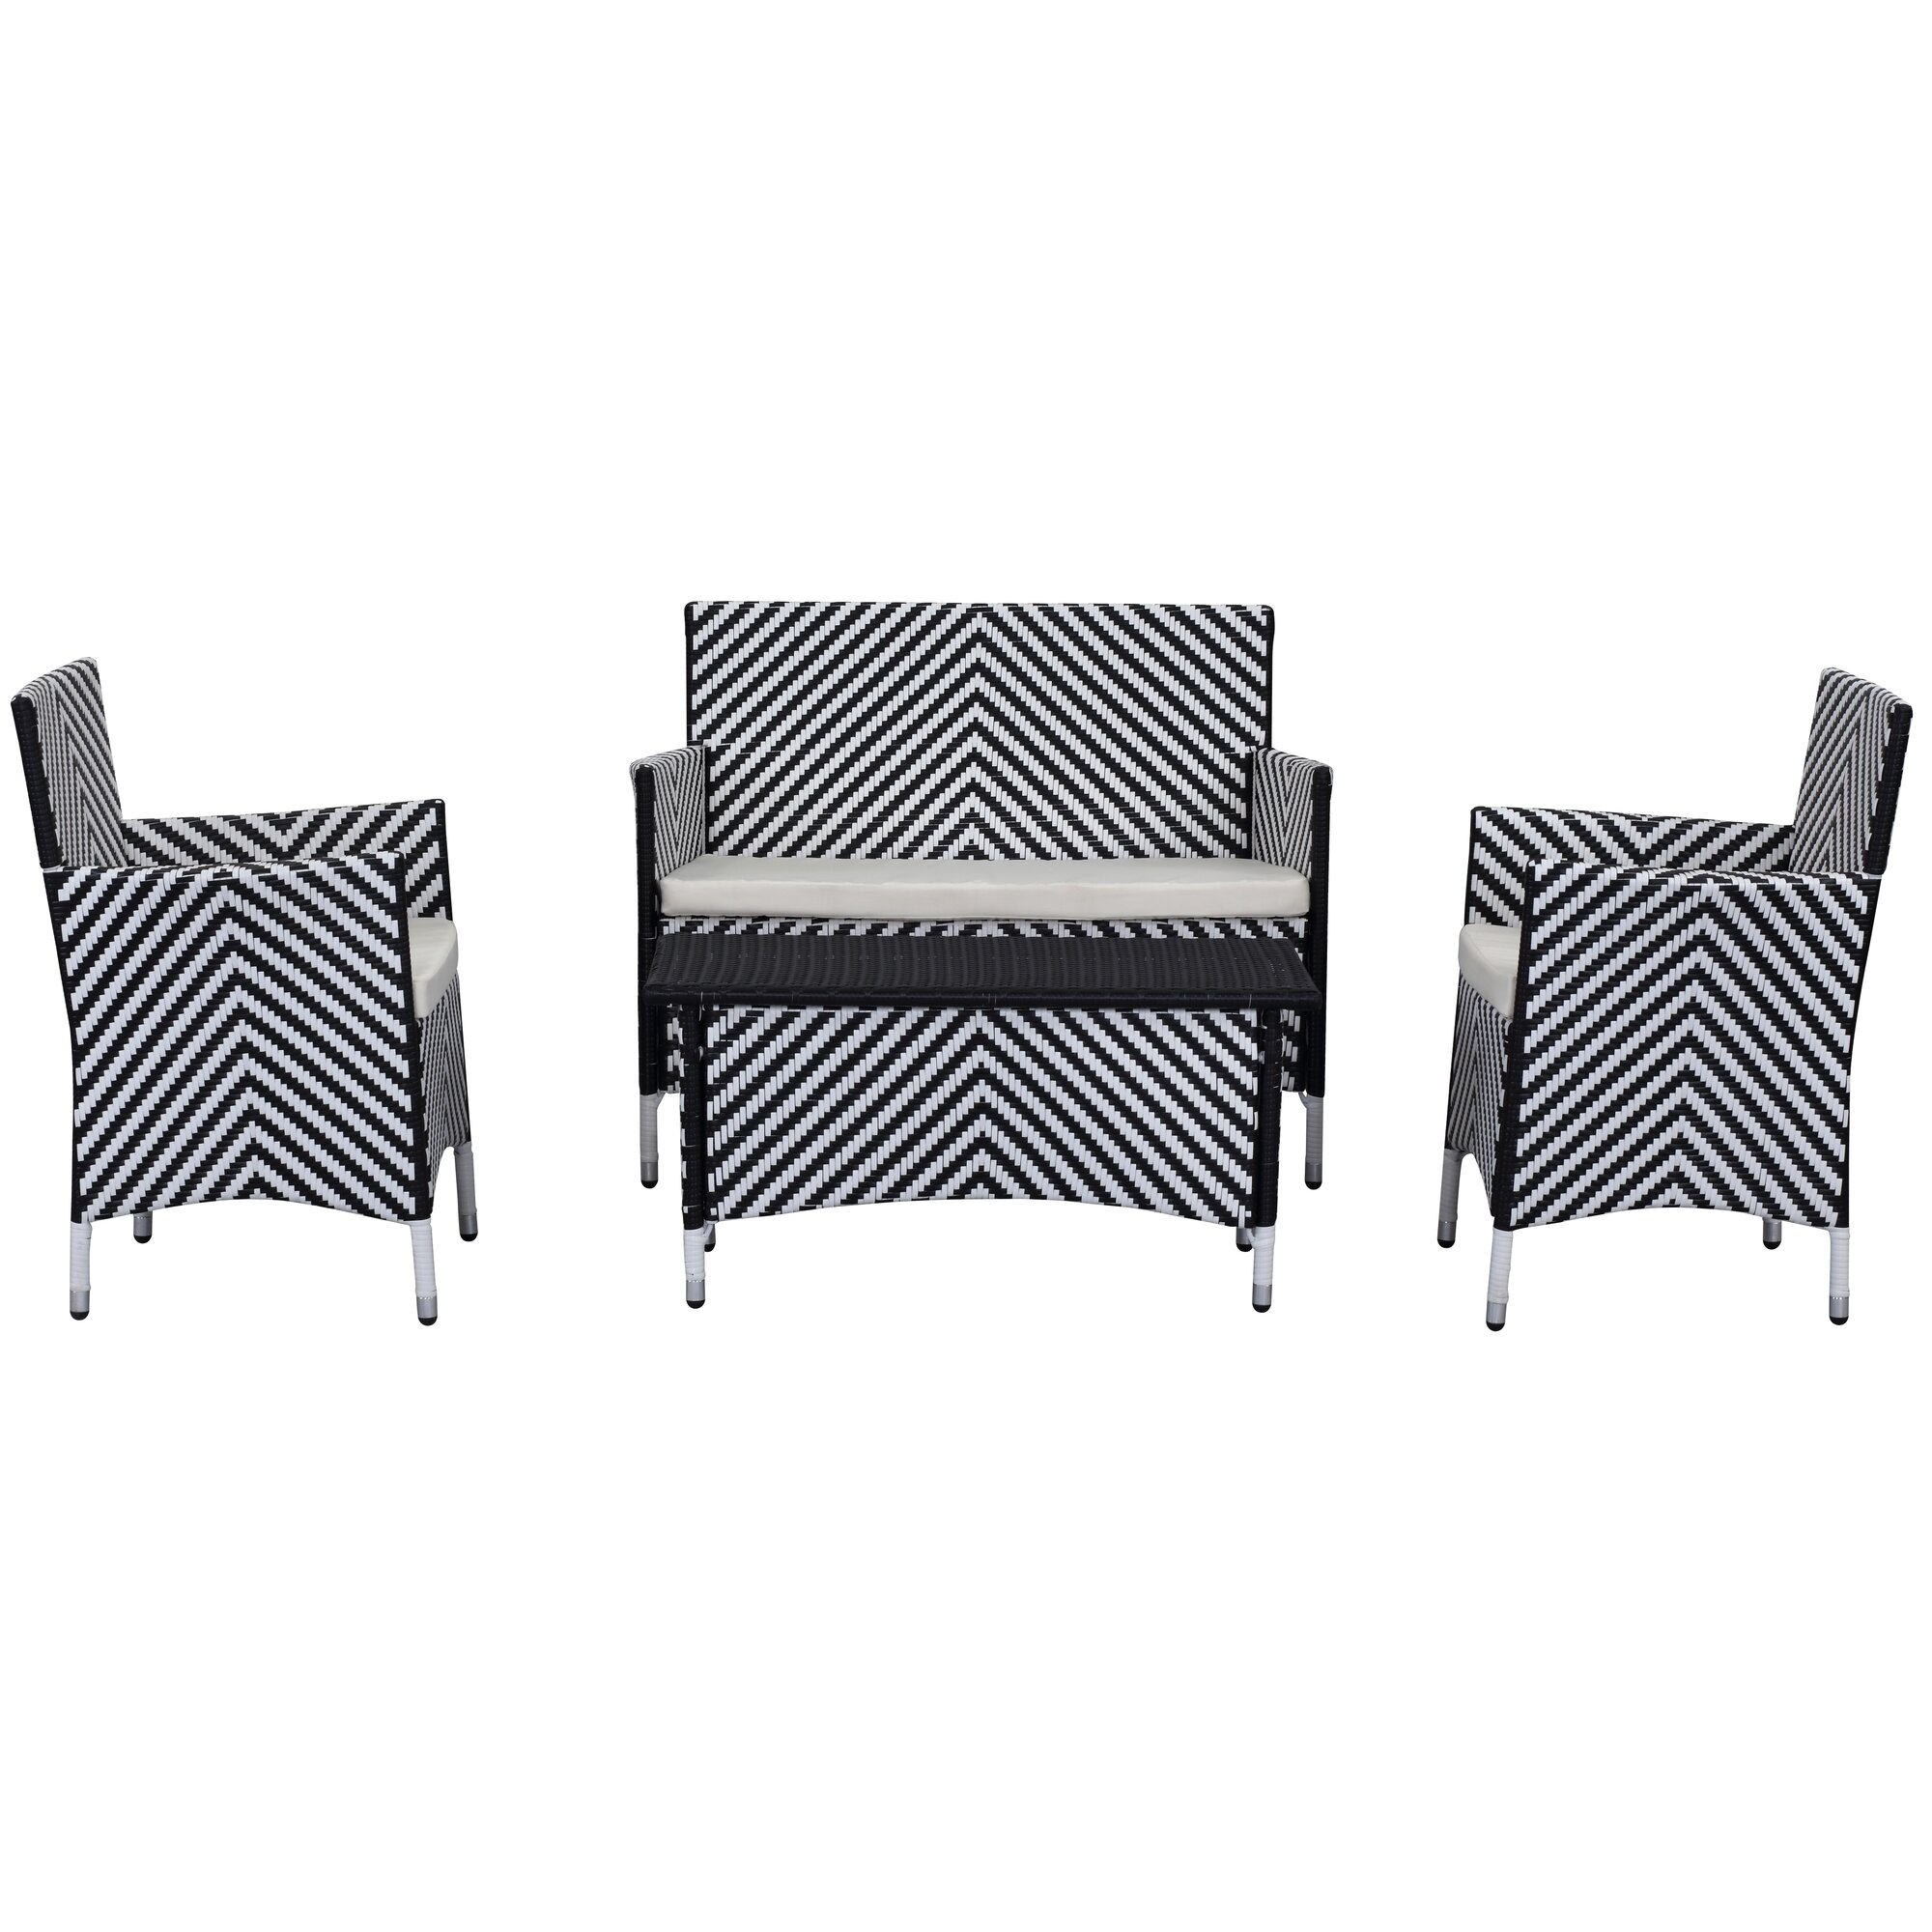 Furniture Cushions On Deep Seating Cushions For Outdoor Furniture